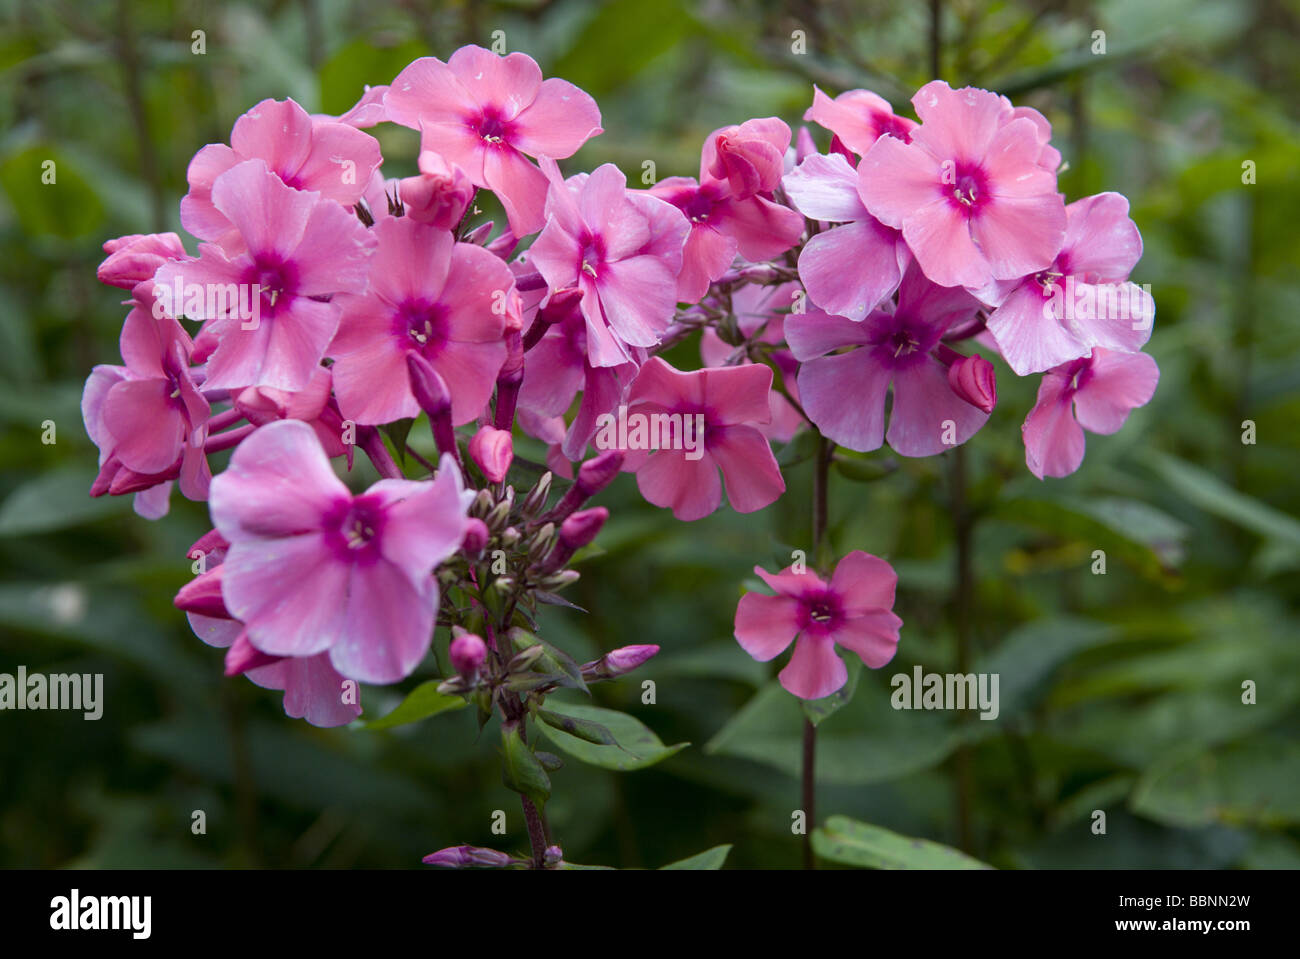 botany, garden phlox (phlox paniculata), Additional-Rights-Clearance-Info-Not-Available - Stock Image